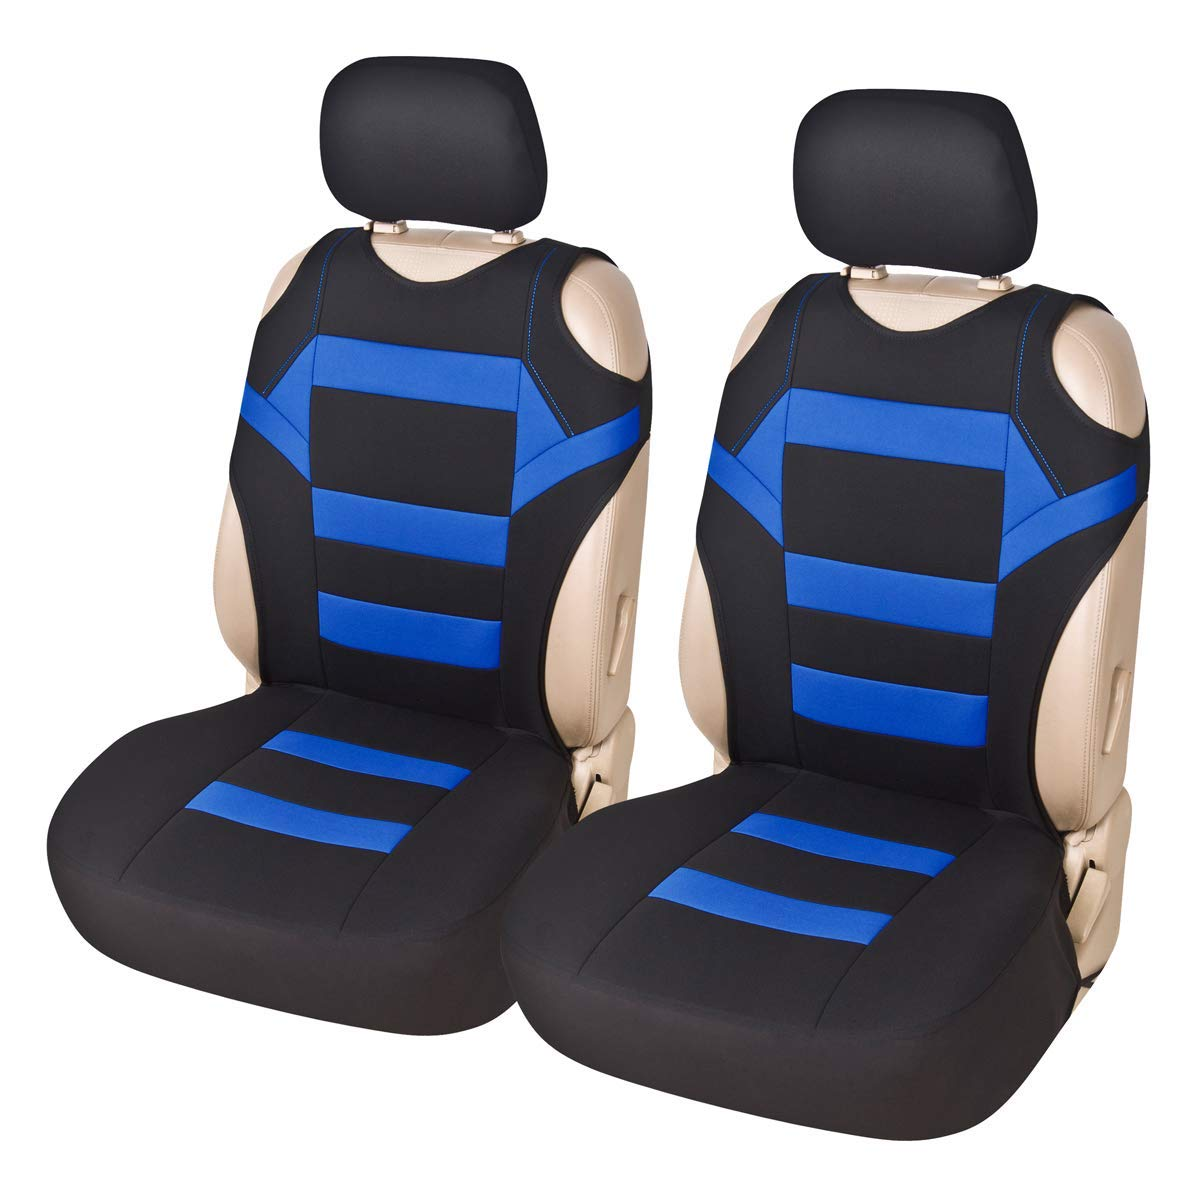 Front Car Seat Covers Sports Vest Styled Bucket Seat Covers Protector Airbag Compatible Universal Fit for Detachable Headrest